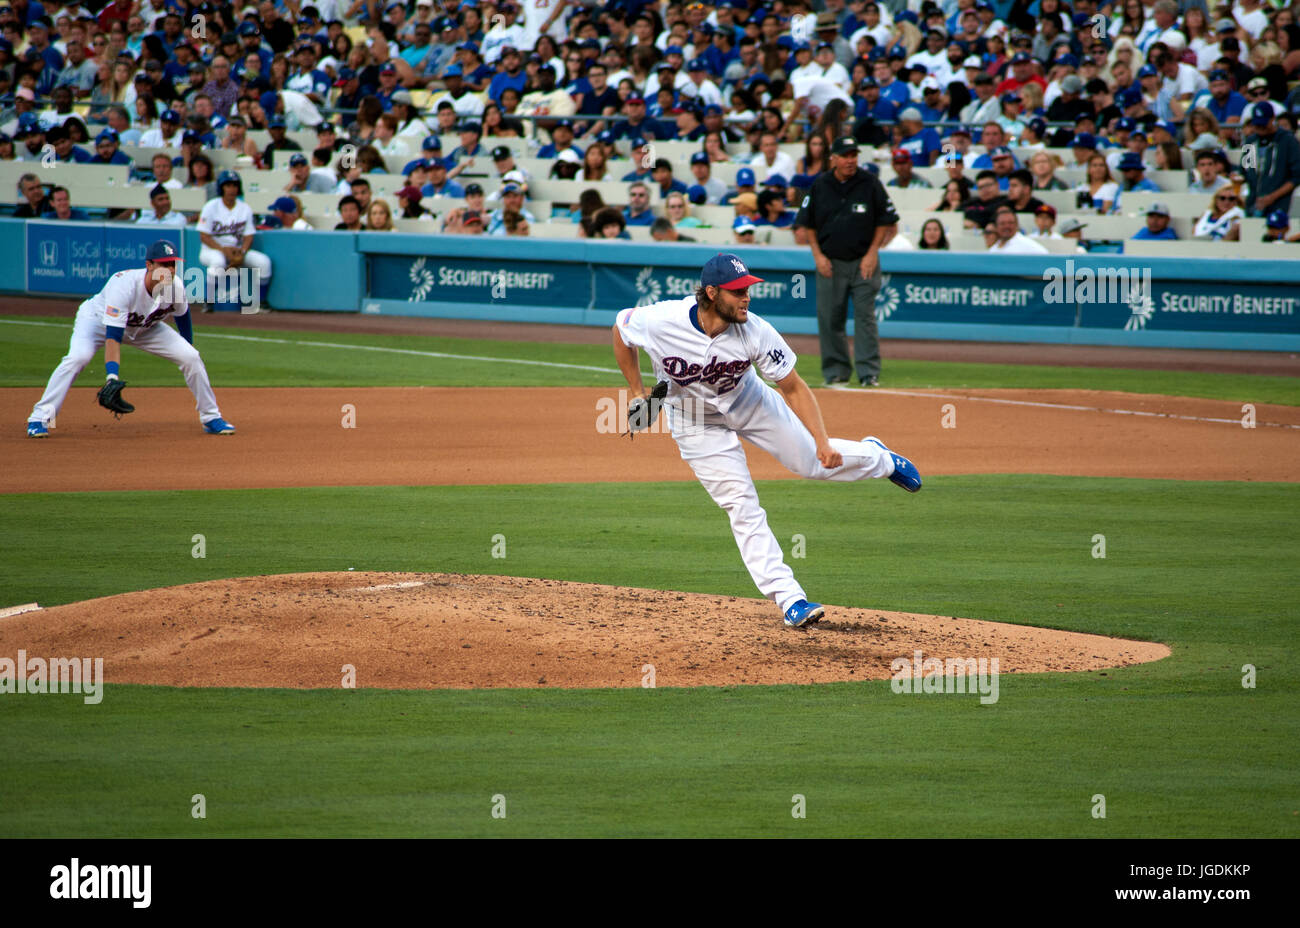 Dodger pitcher Clayton Kershaw at Dodger Stadium - Stock Image